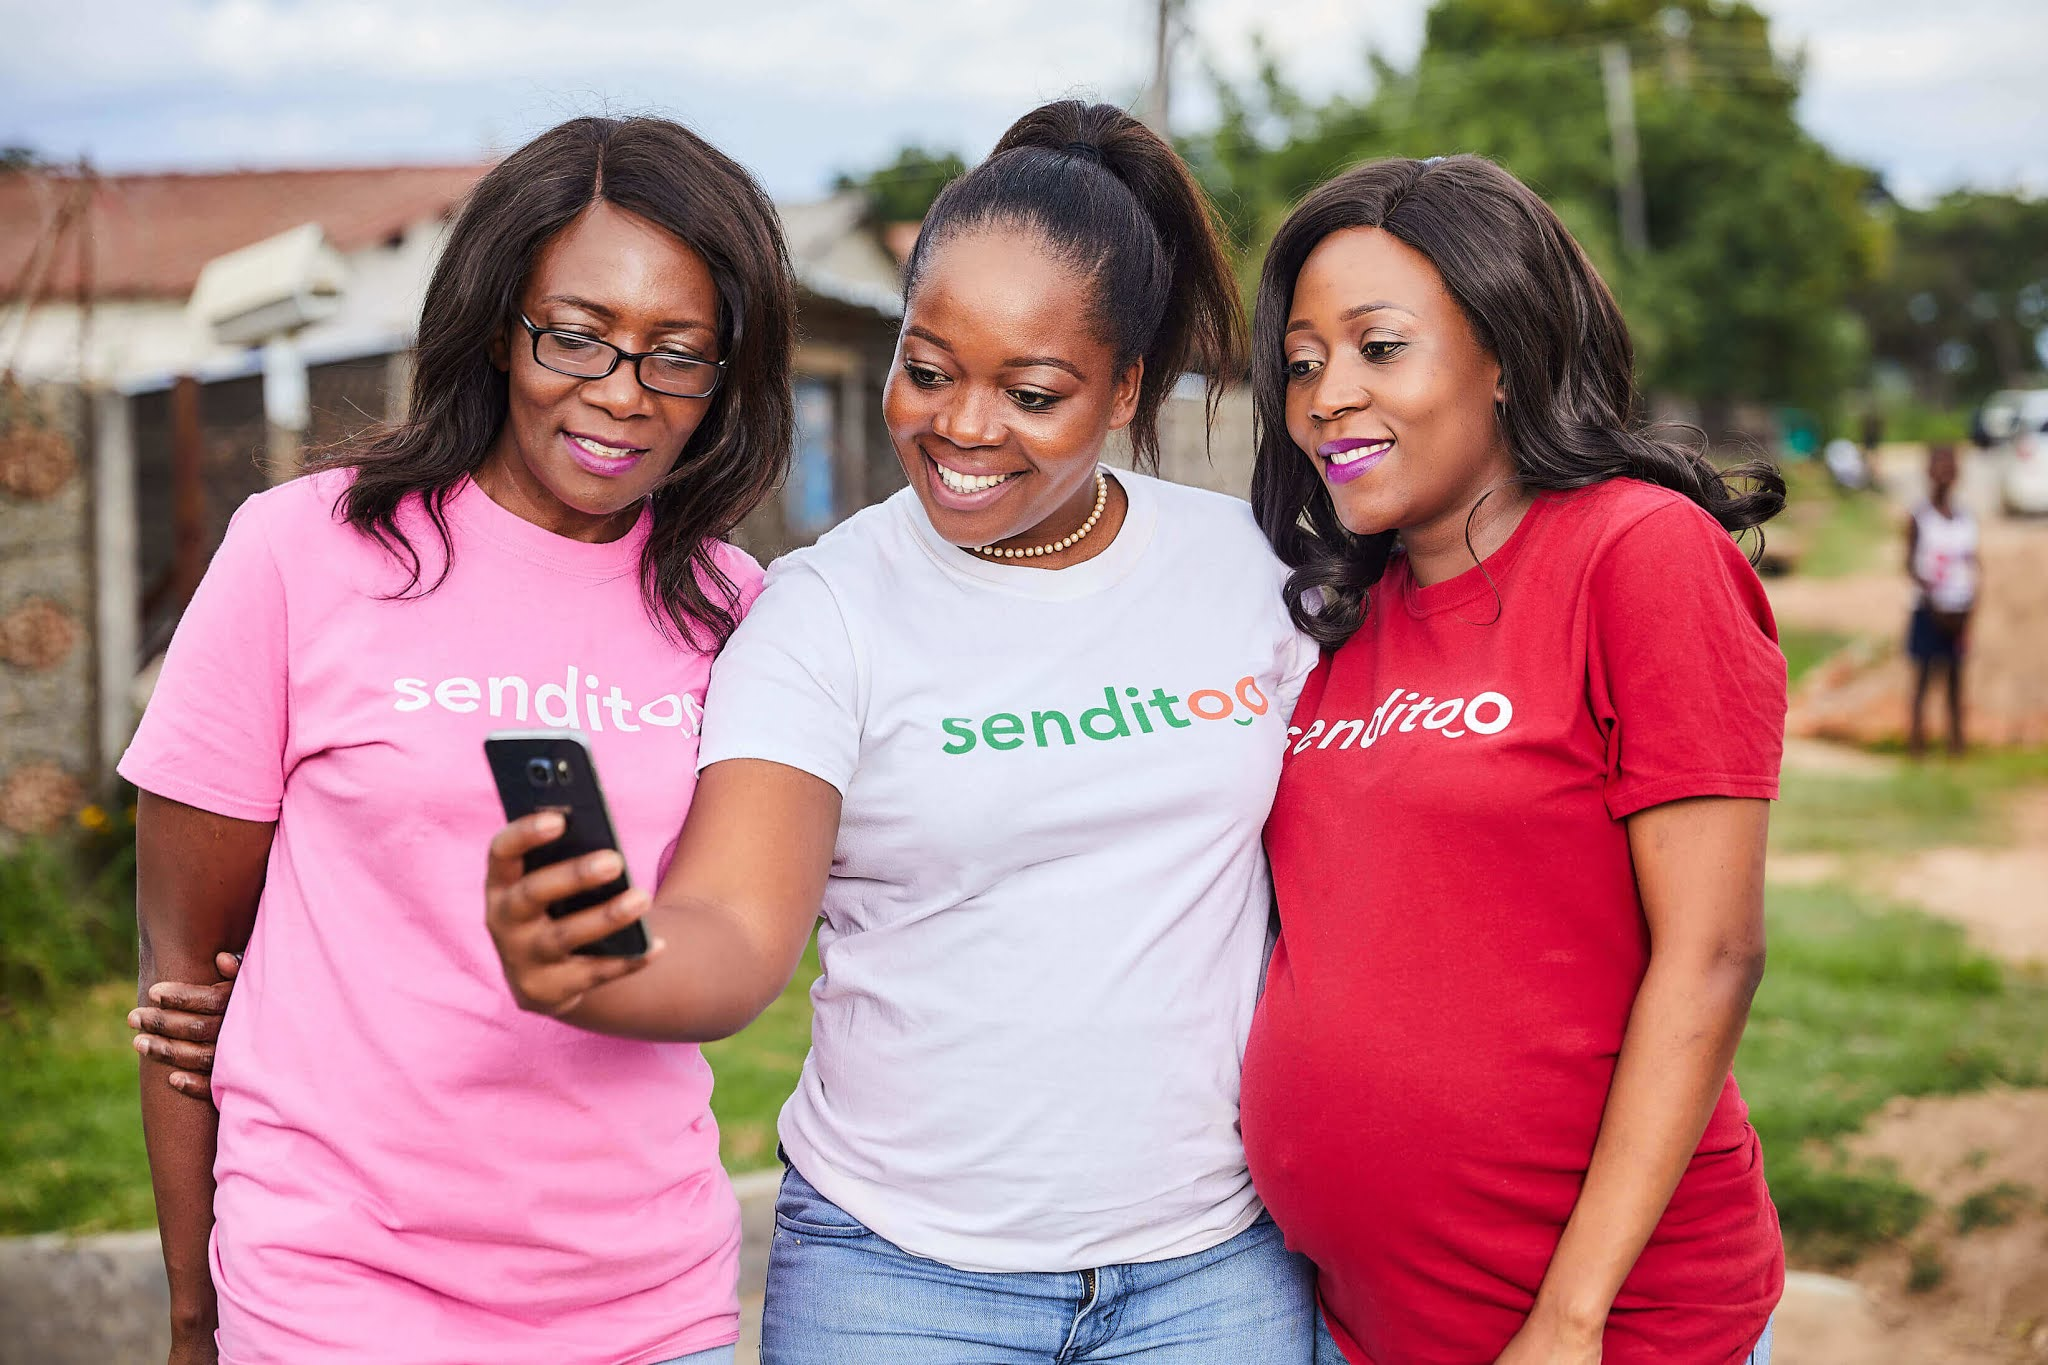 Senditoo Cuts All Fees To Send Money To Zimbabwe